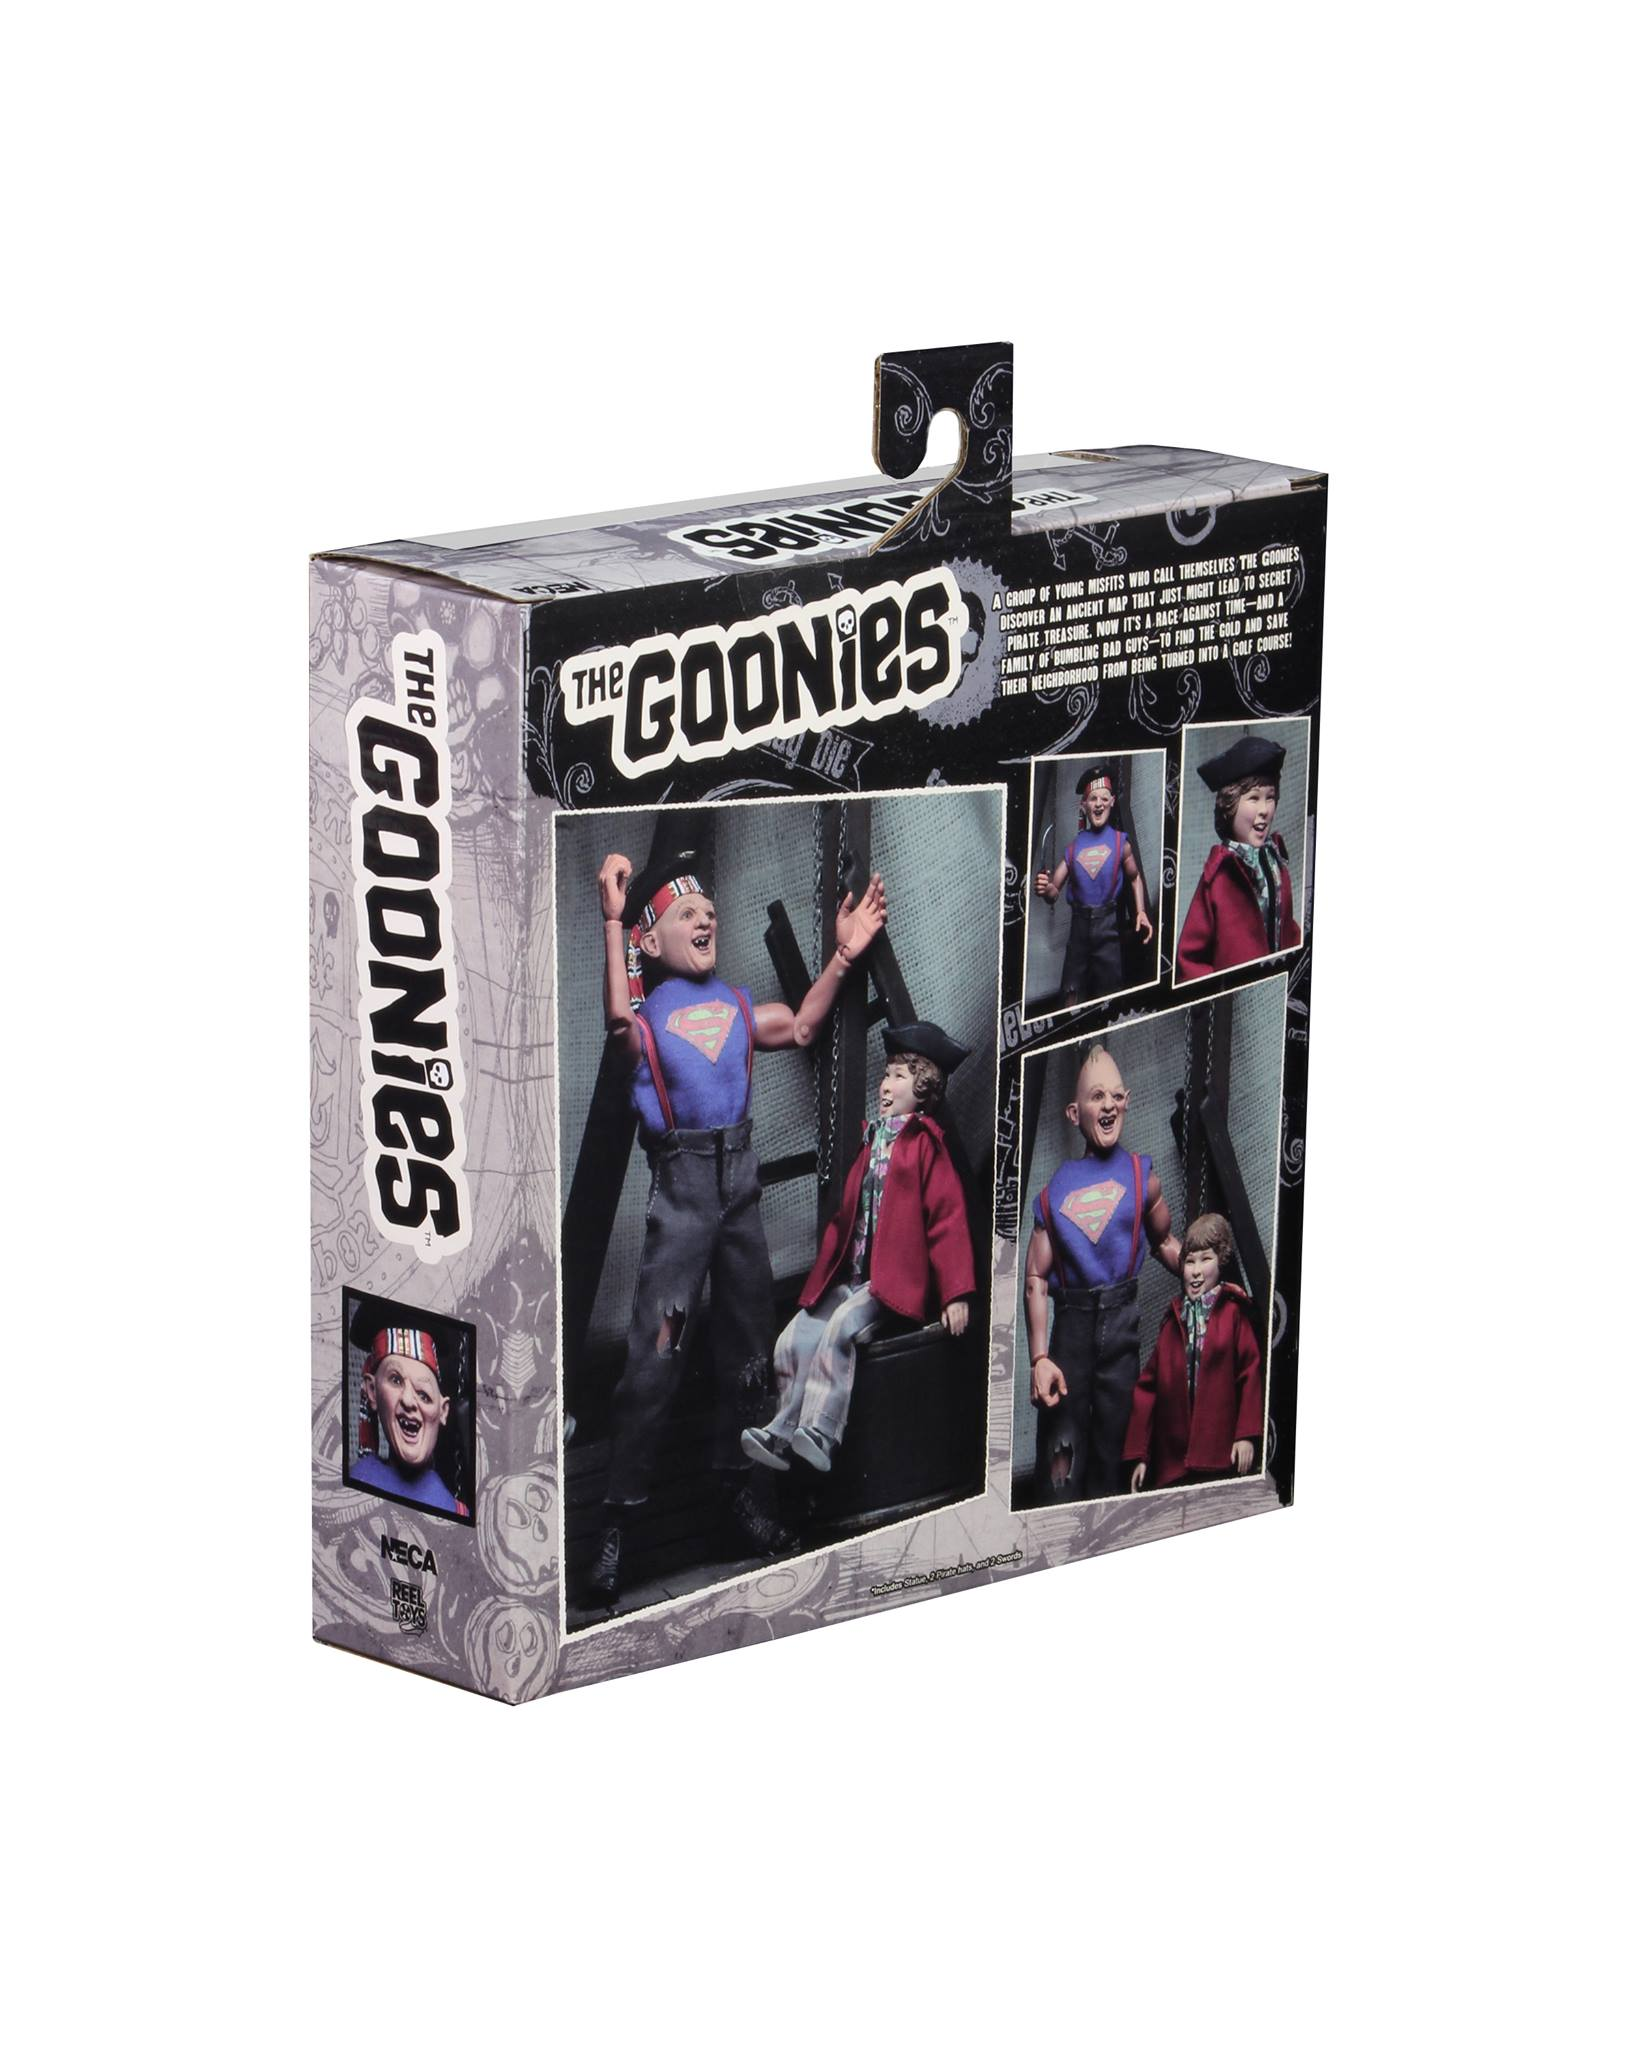 NECA Goonies Set Packaging 003